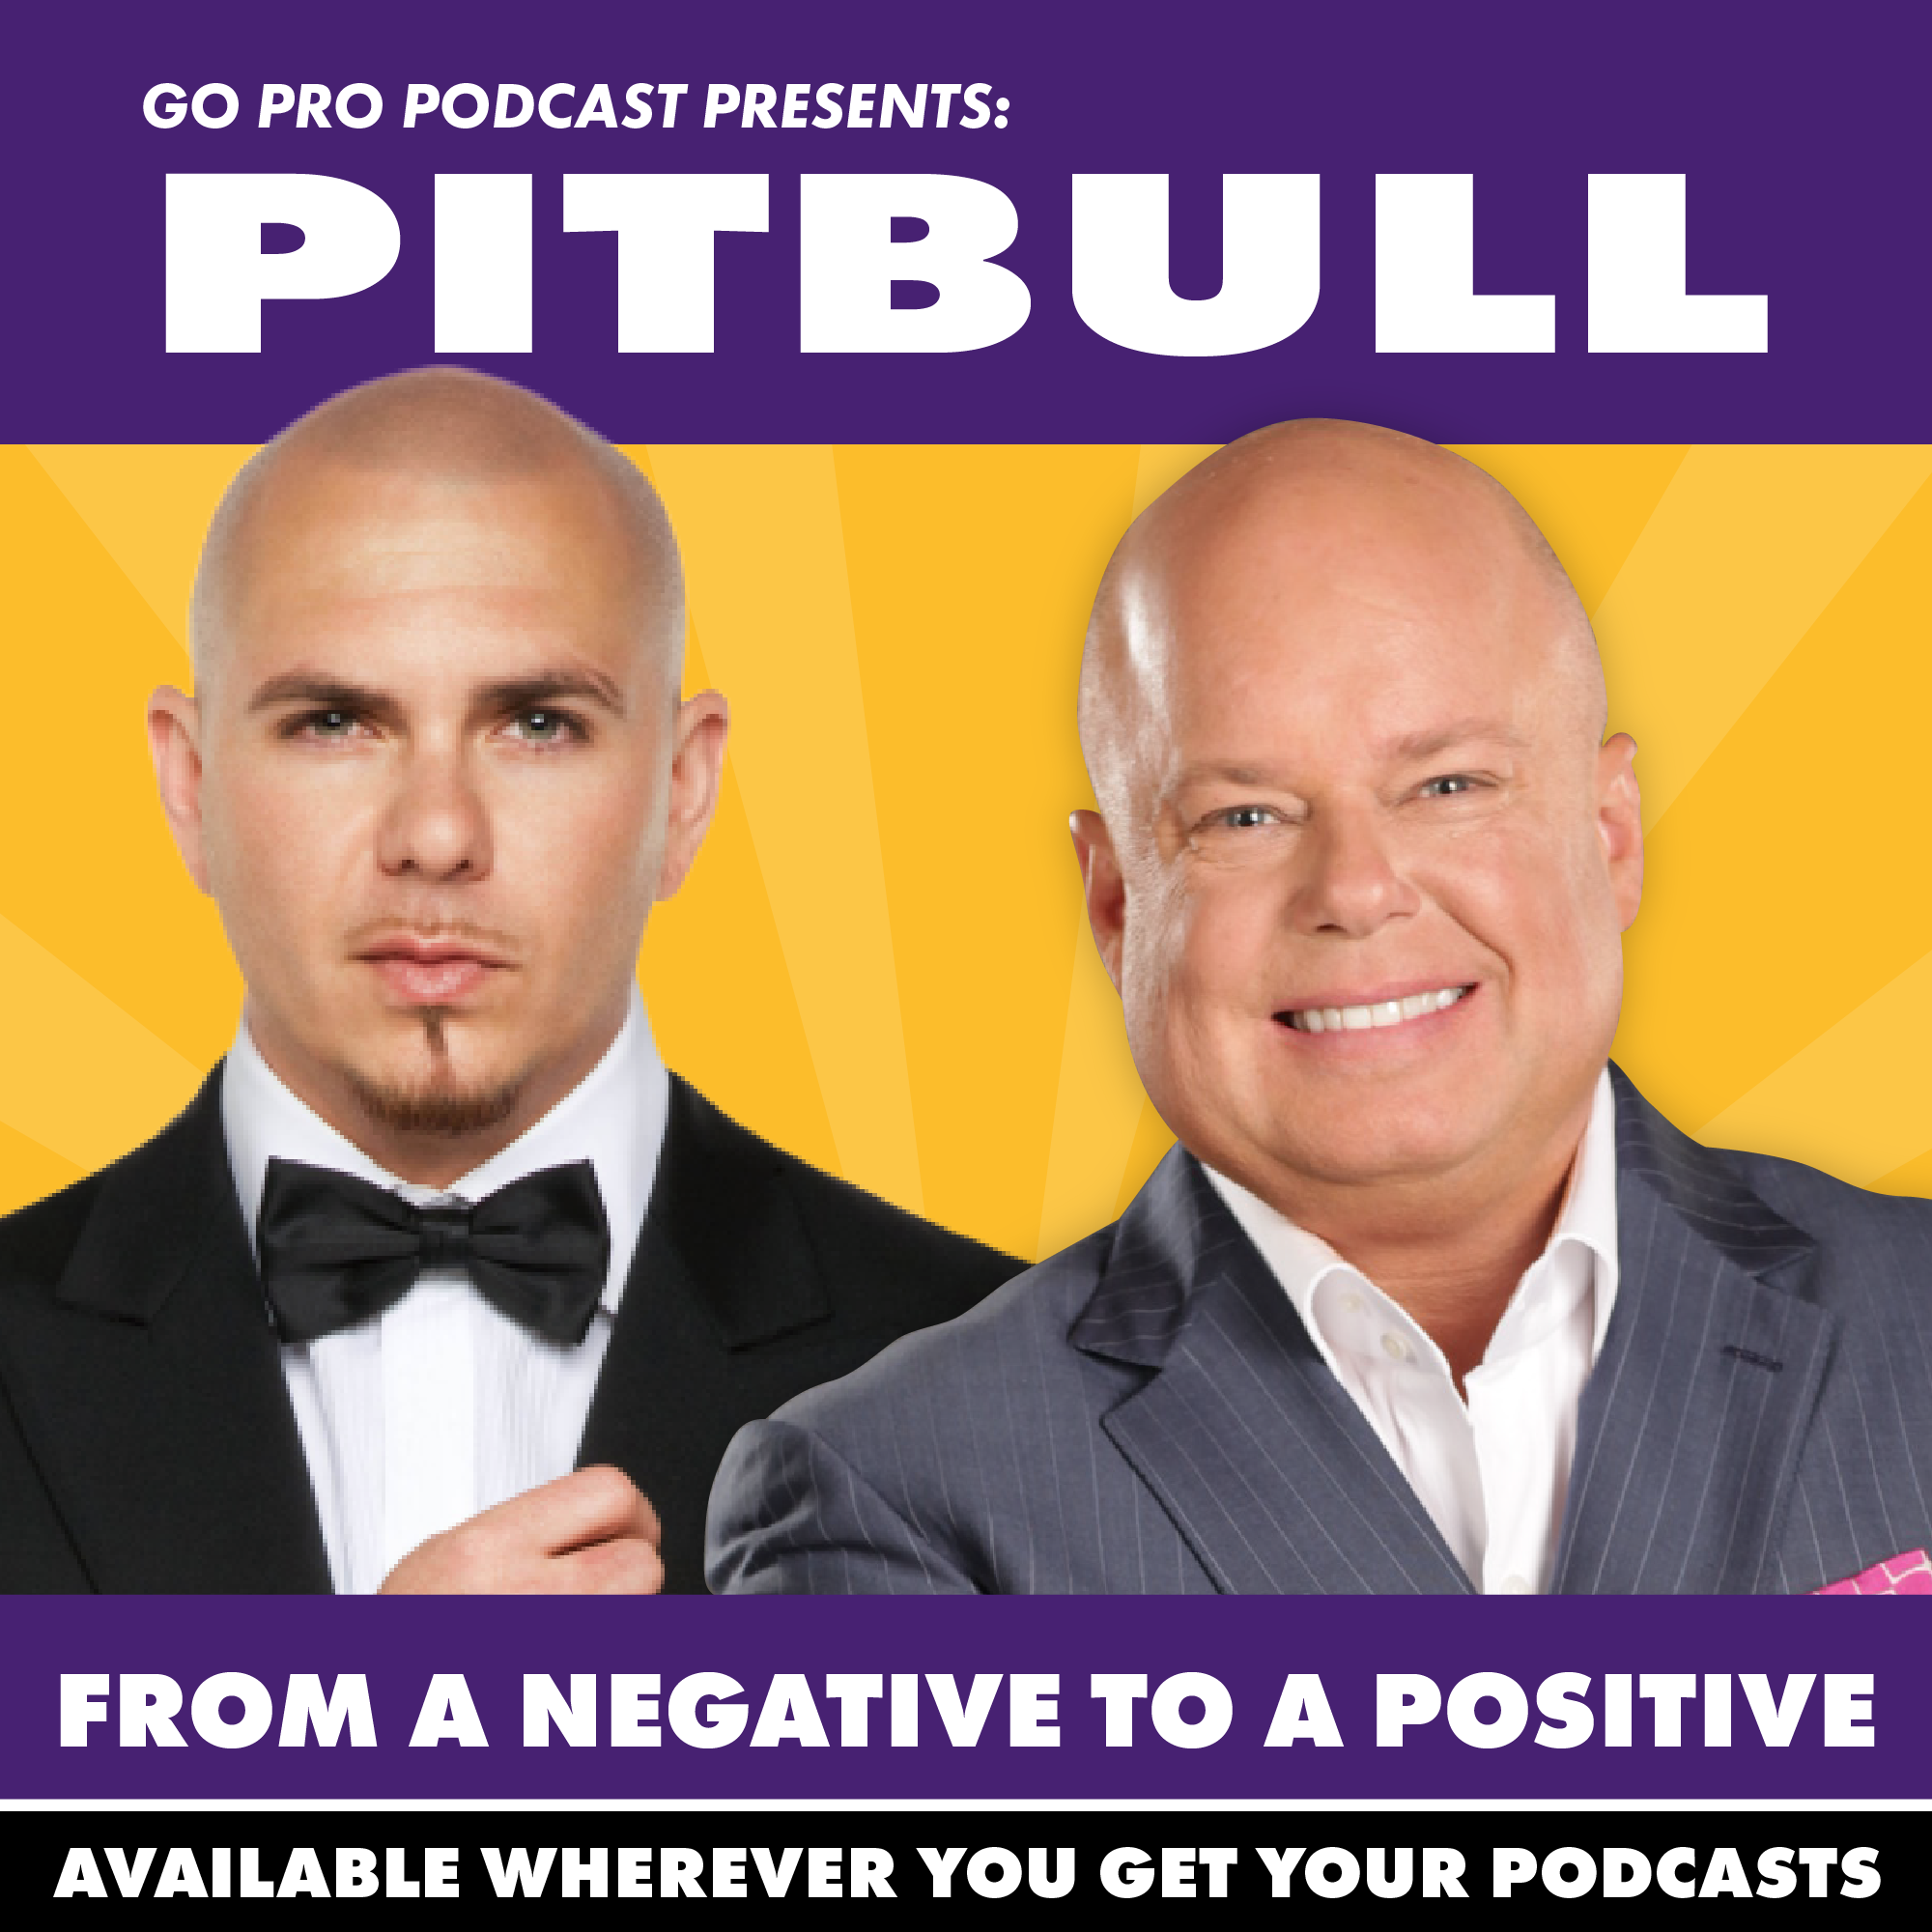 Pitbull:  From a Negative to a Positive